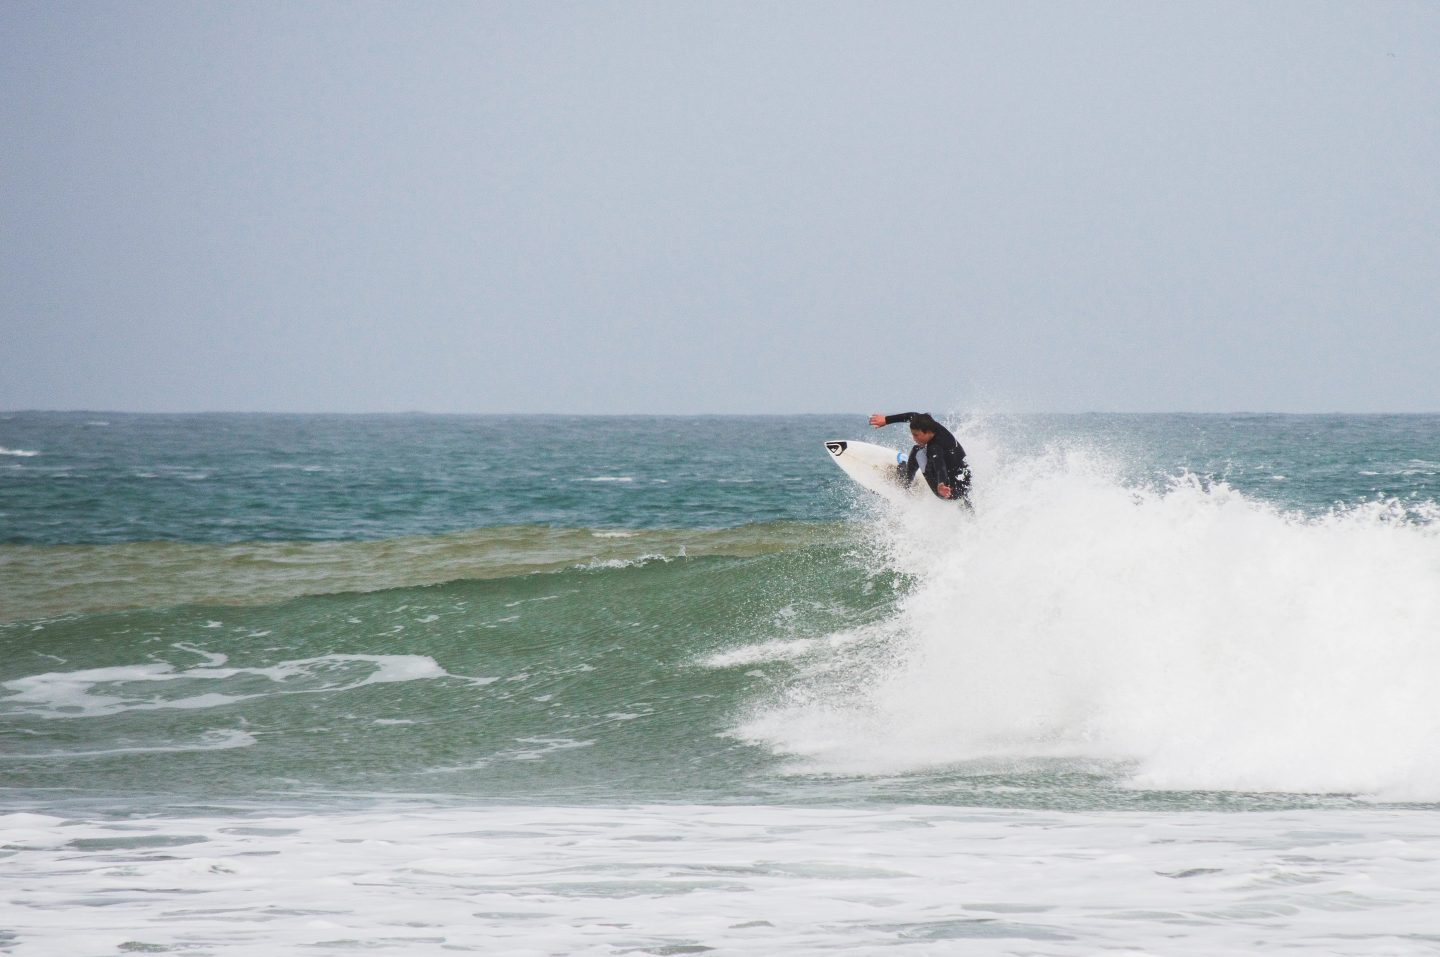 Surfing in Cornwall, UK